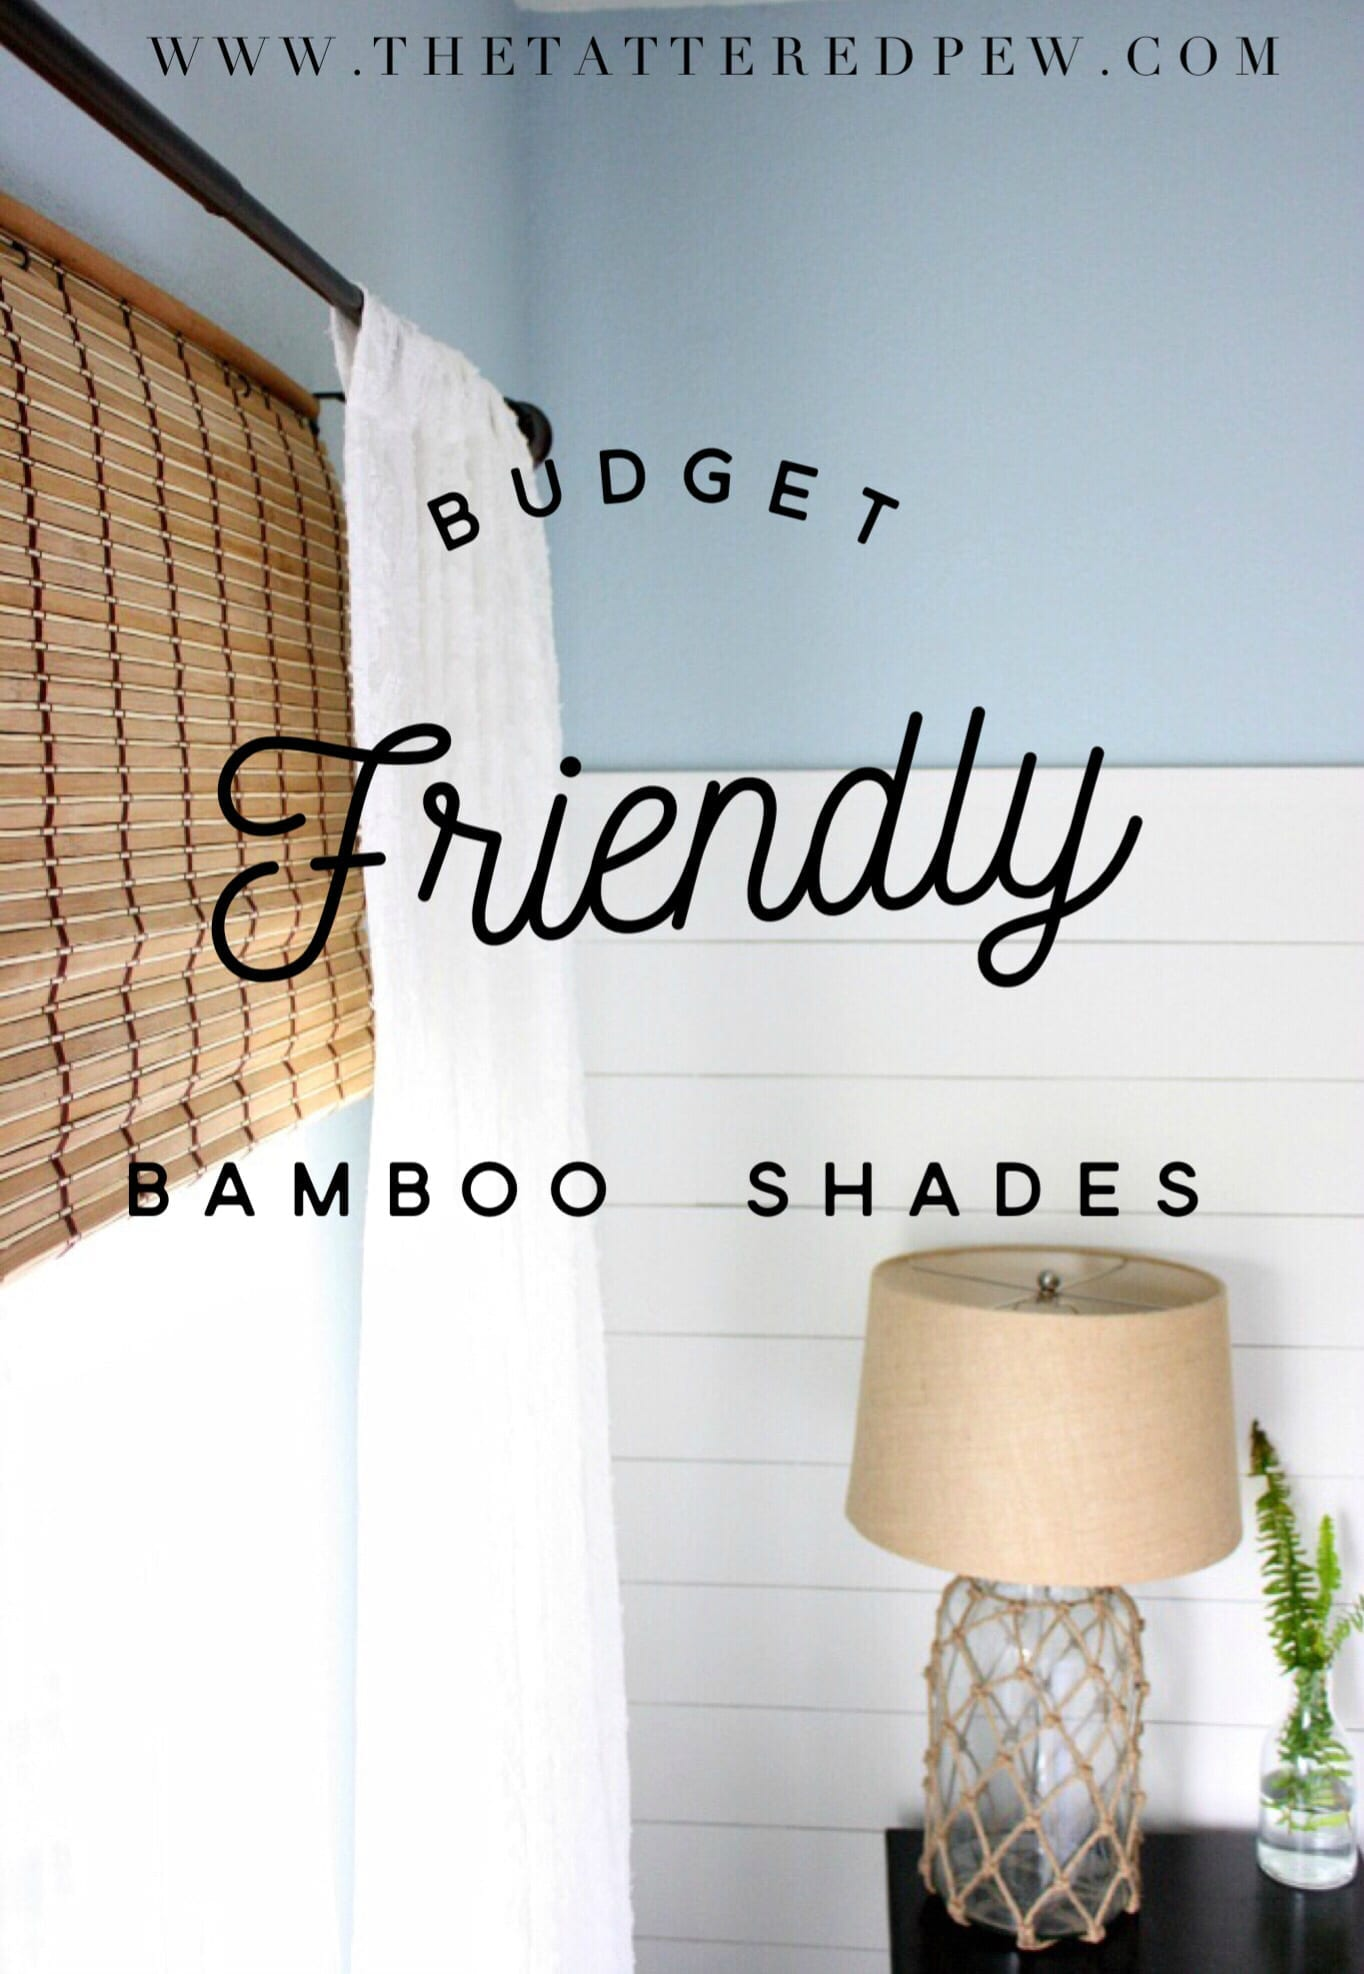 Inexpensive Bamboo Shades 100 Room Challenge Week 3 The Tattered Pew